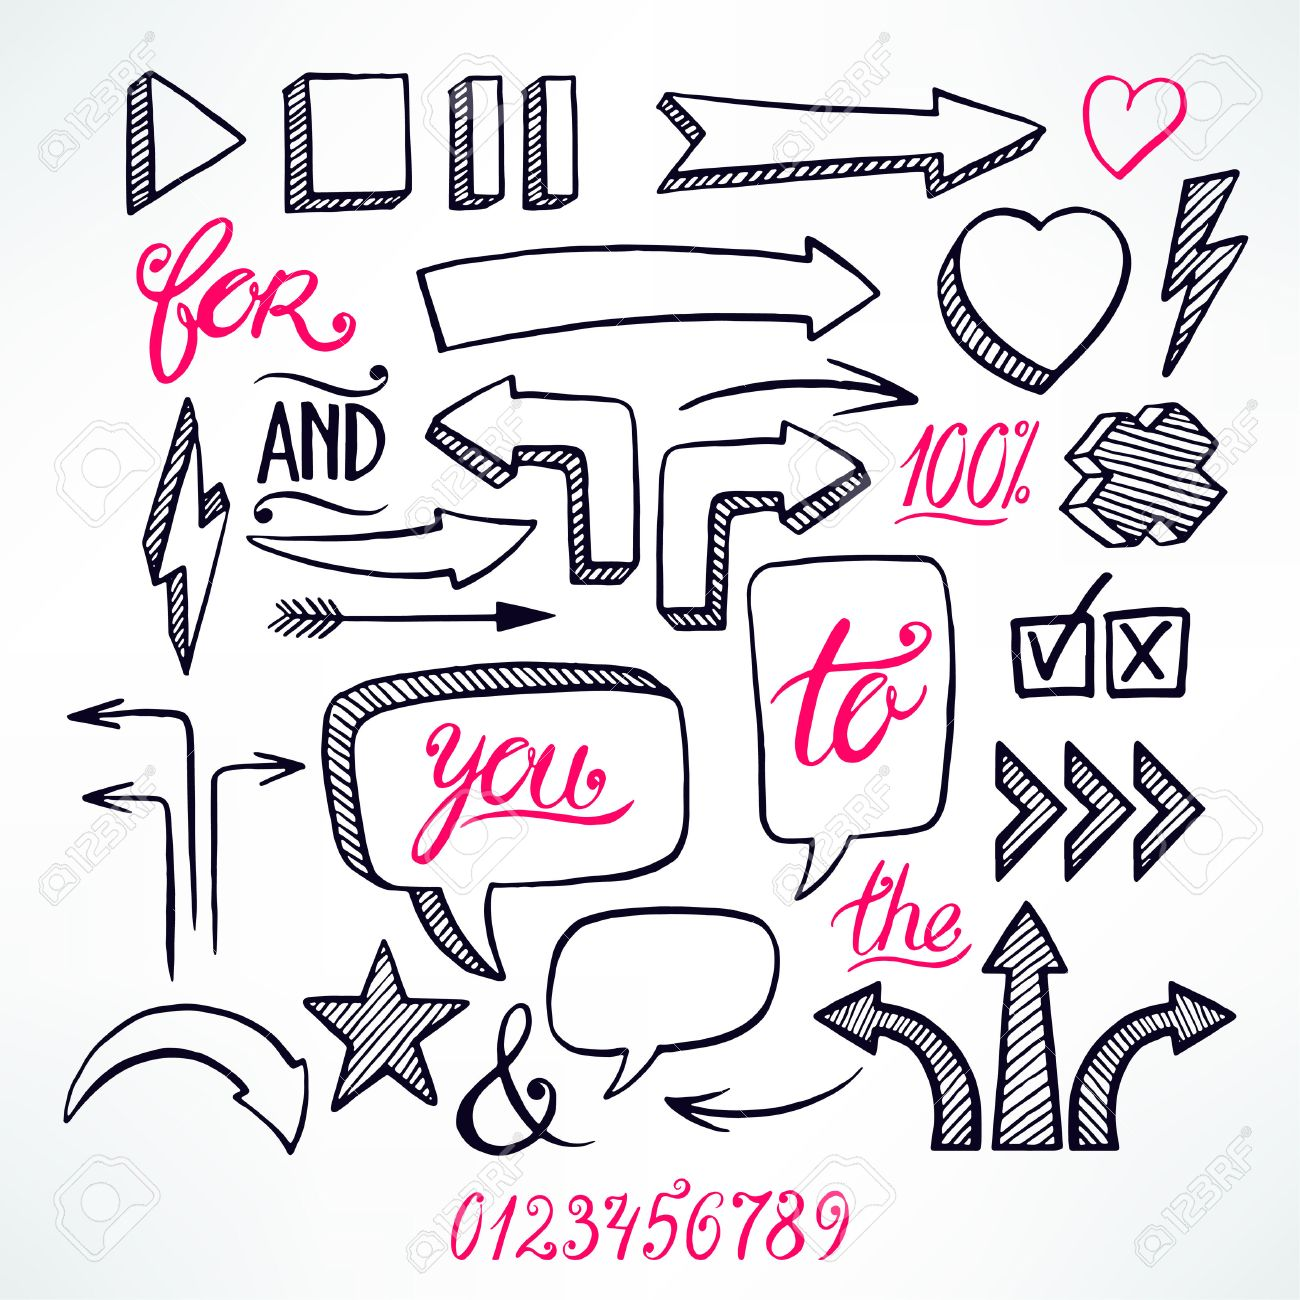 vector set of hand-drawn arrows and bubbles icons on white background - 42604832